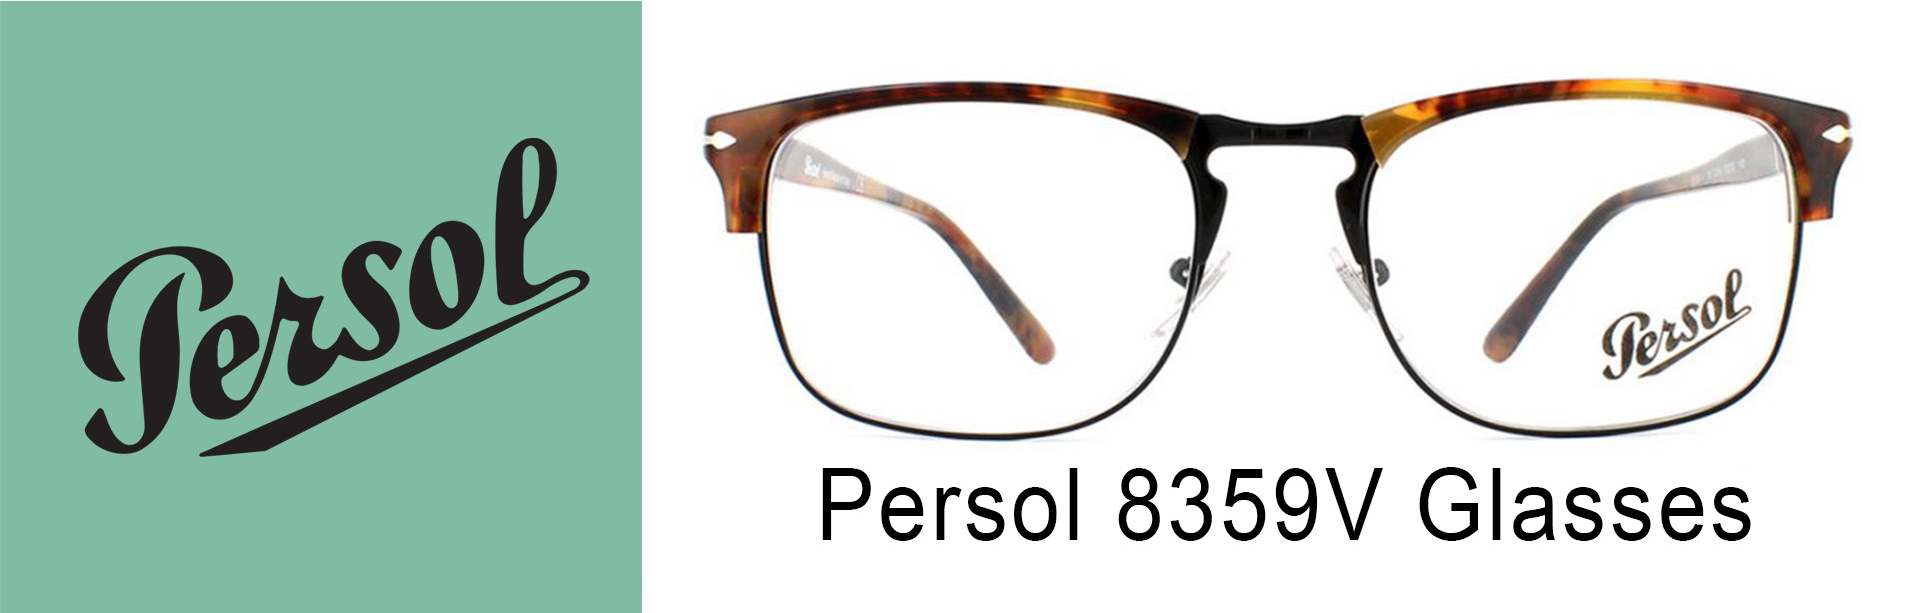 Persol 8359v Glasses Top banner for In Focus Blog | EyeWearThese.com